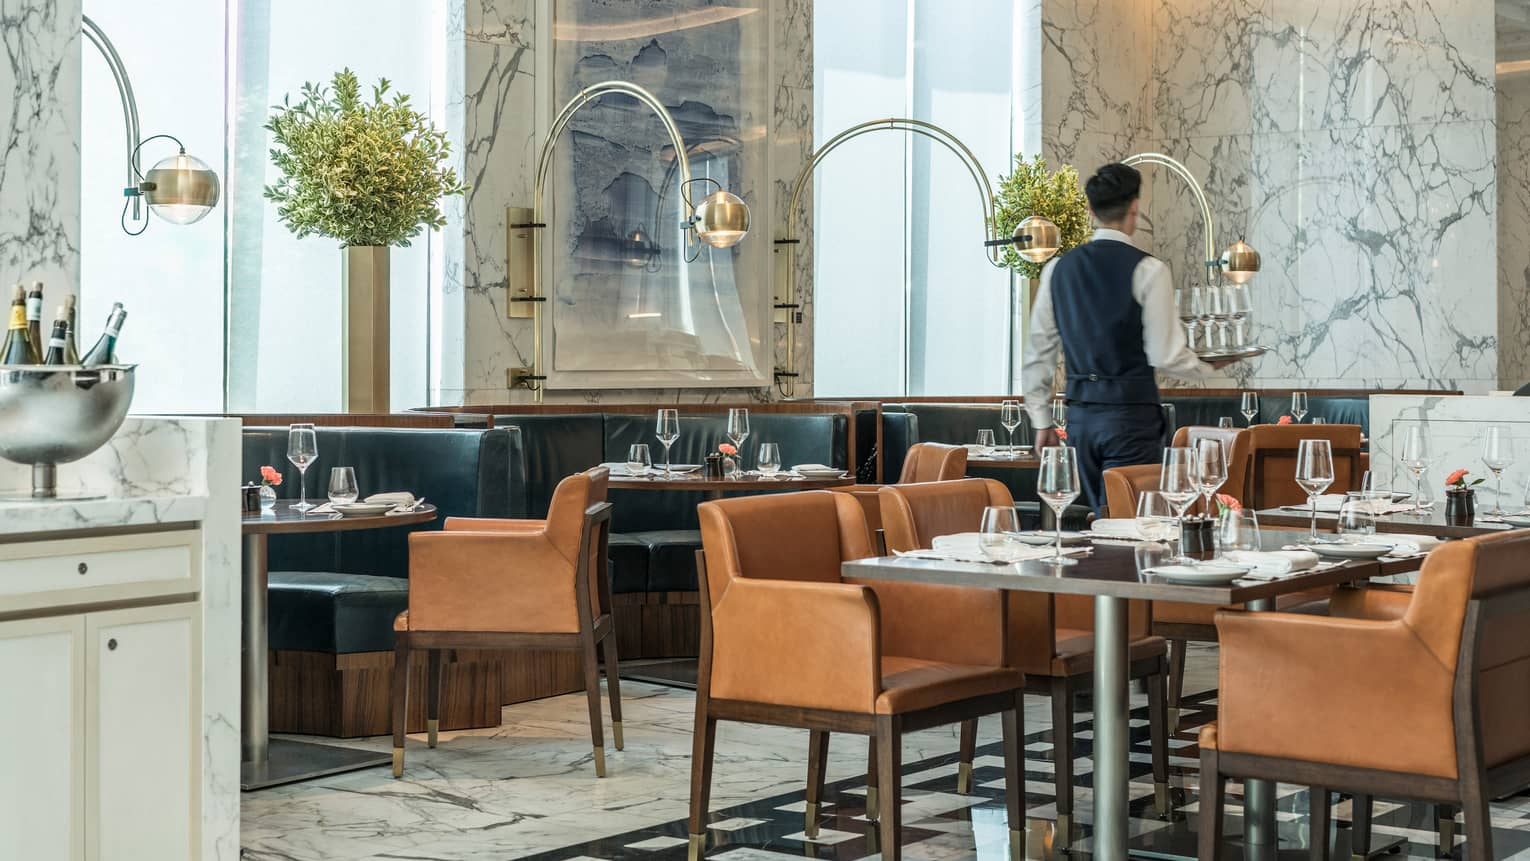 Server carries tray of glasses past lounge tables, chairs in Boccalino dining room